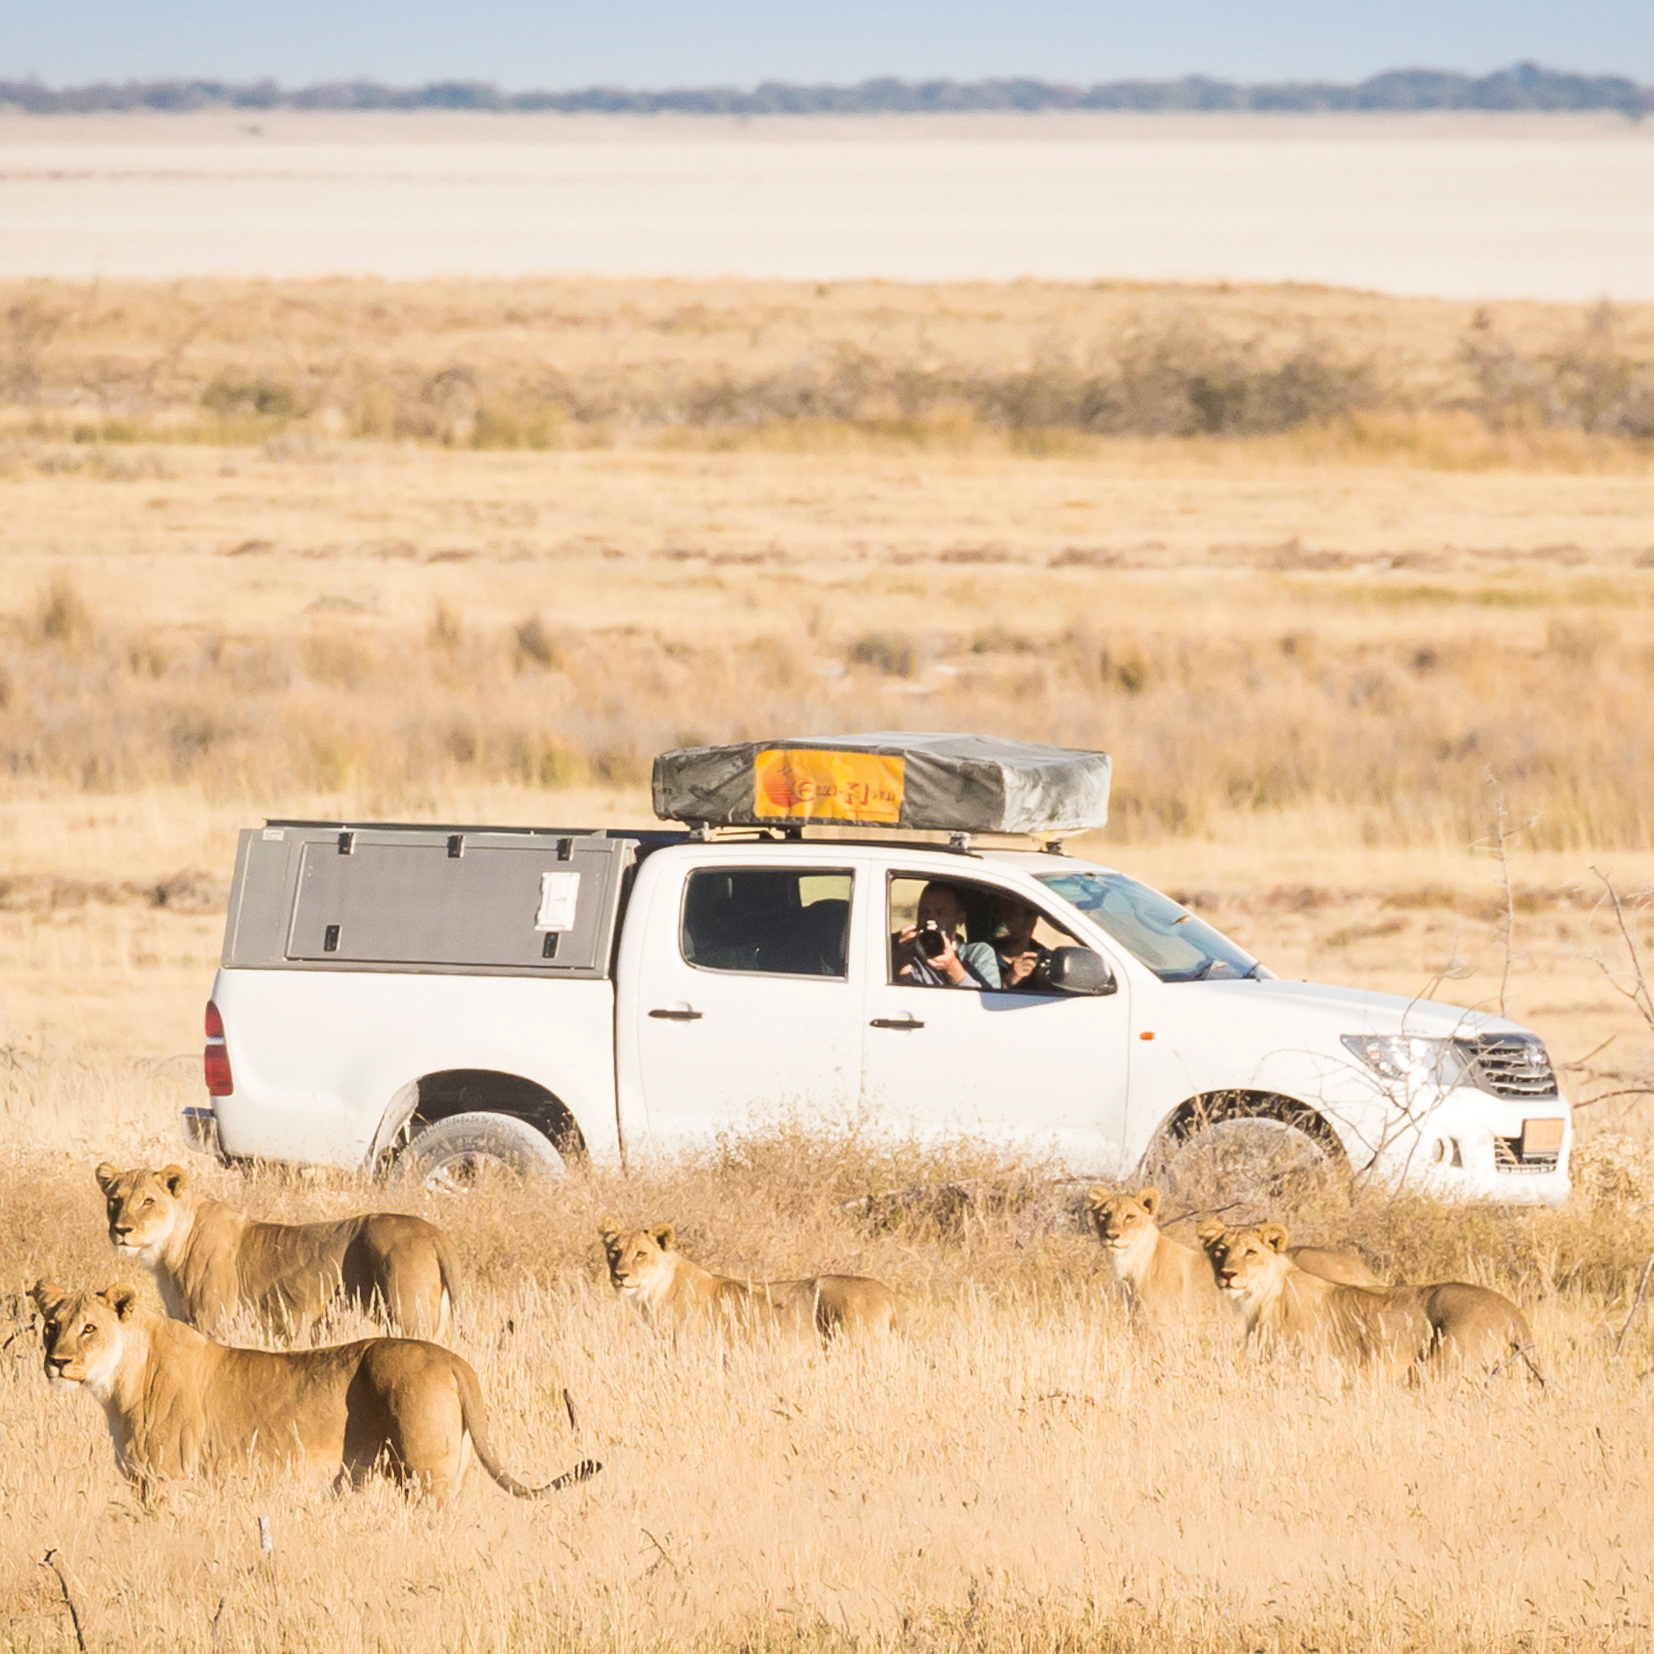 2-female-lions-retreat-with-their-5-cubs-during-a-pride-takeover-near-Charitsaub,-Etosha-